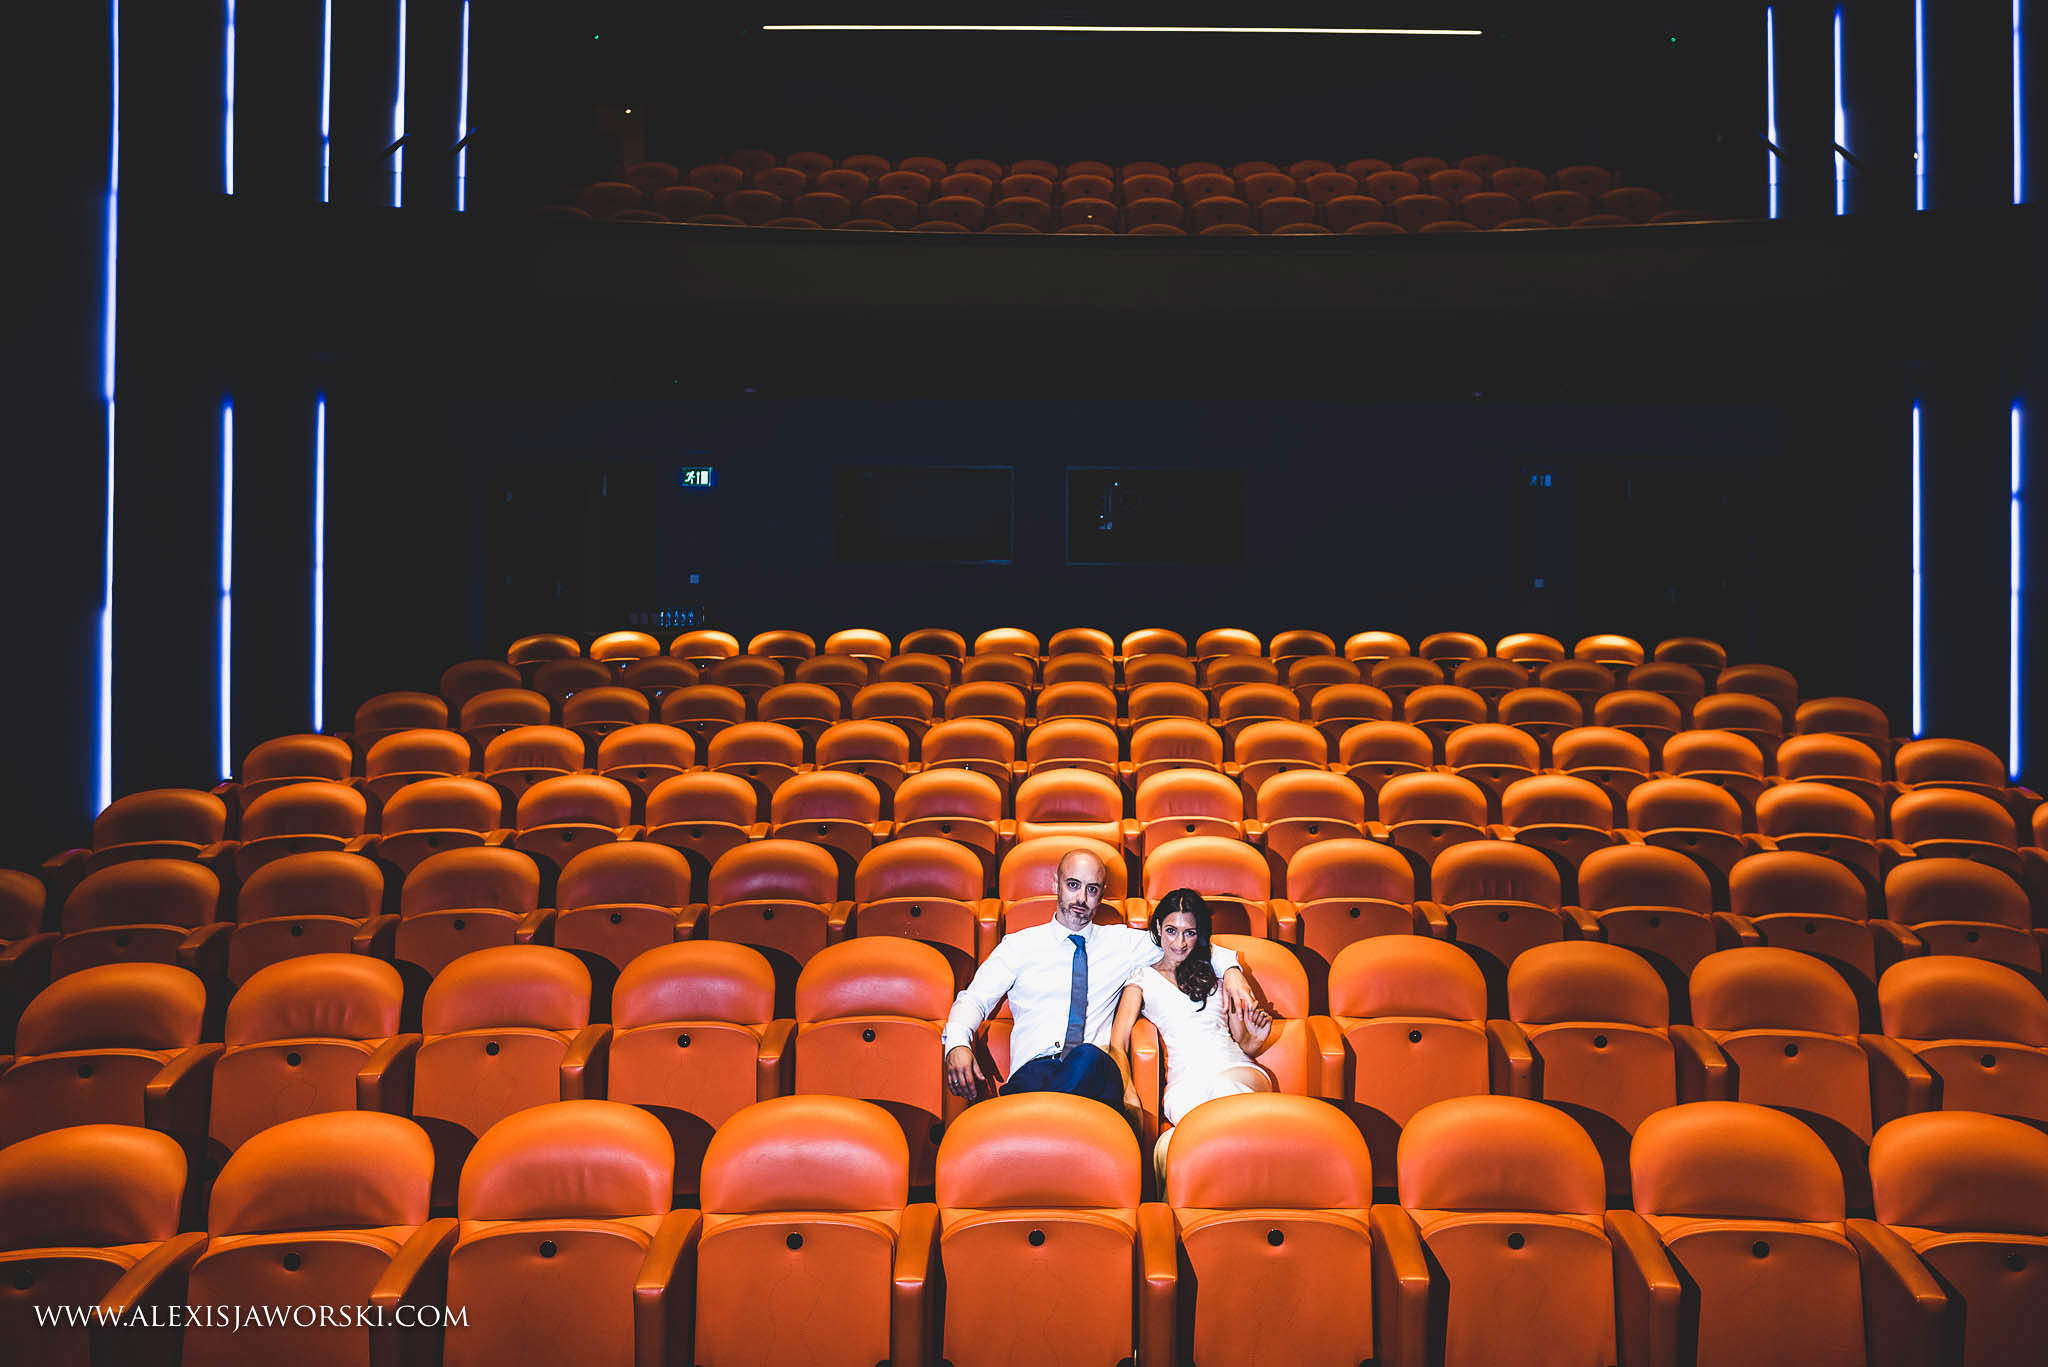 Portrait of the bride and groom at the cinema